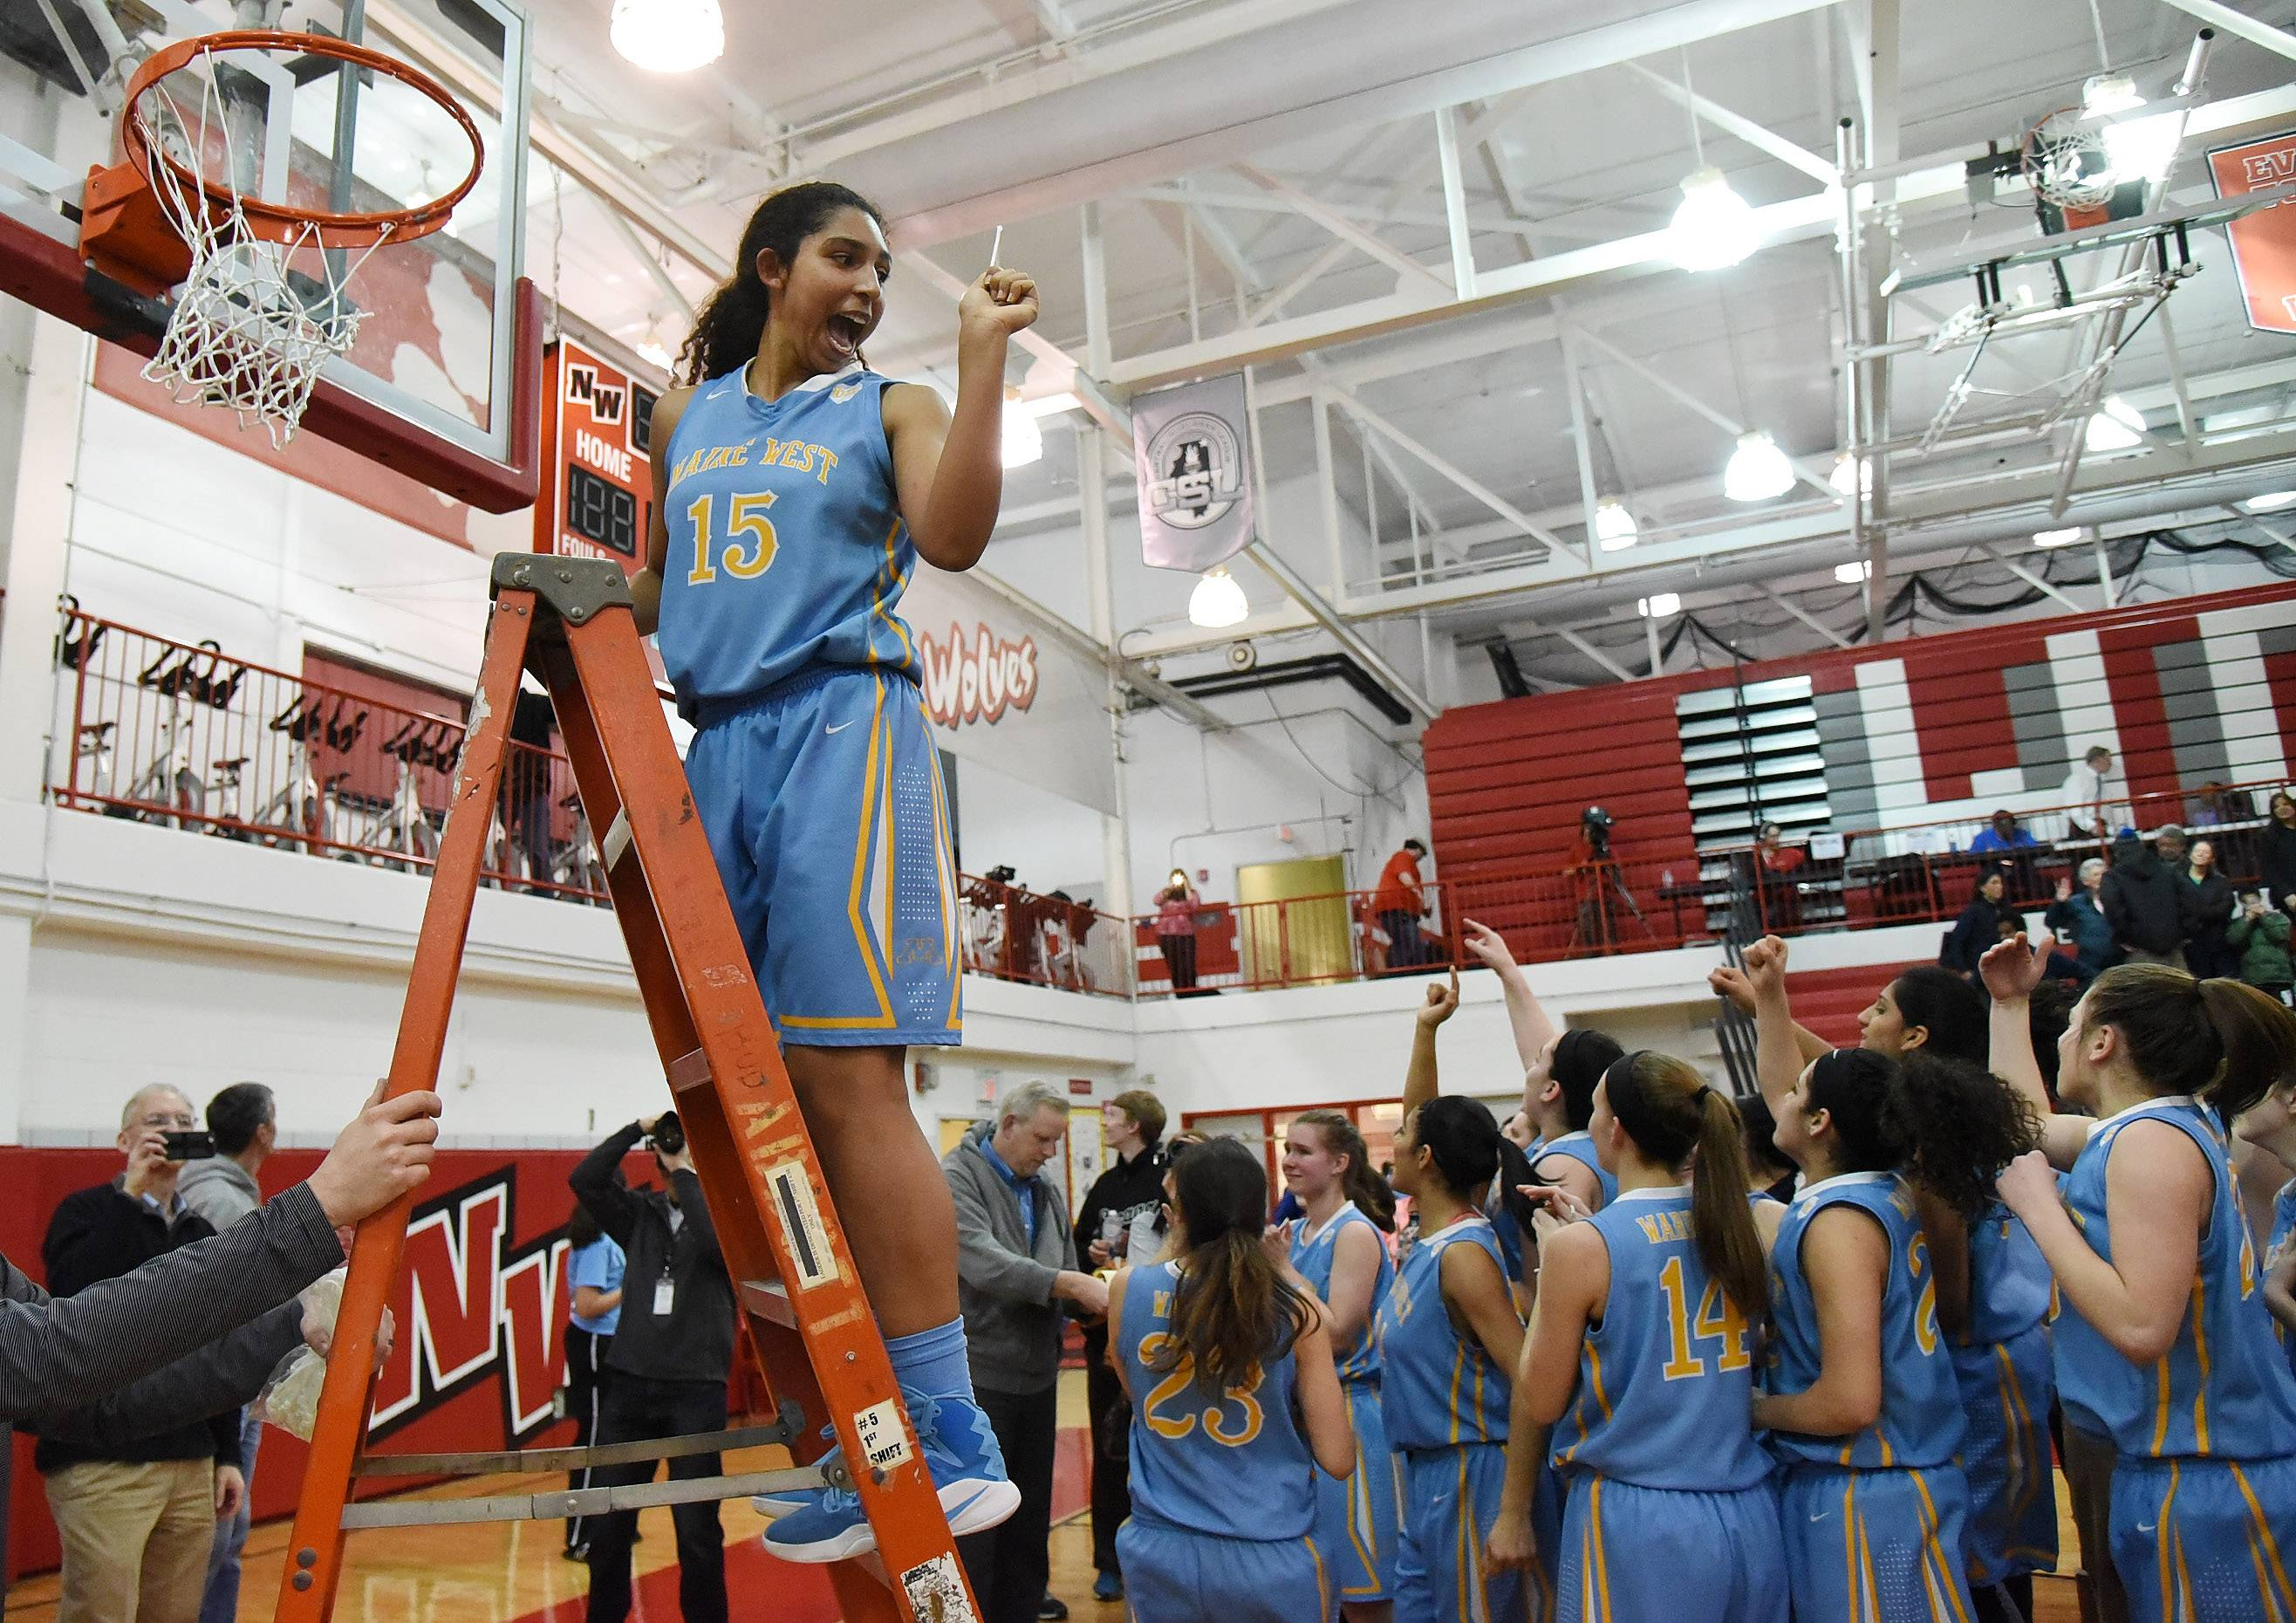 Rachel Kent cuts down a piece of the net after Maine West defeated Evanston in the Class 4A sectional final at Niles West on Thursday night.